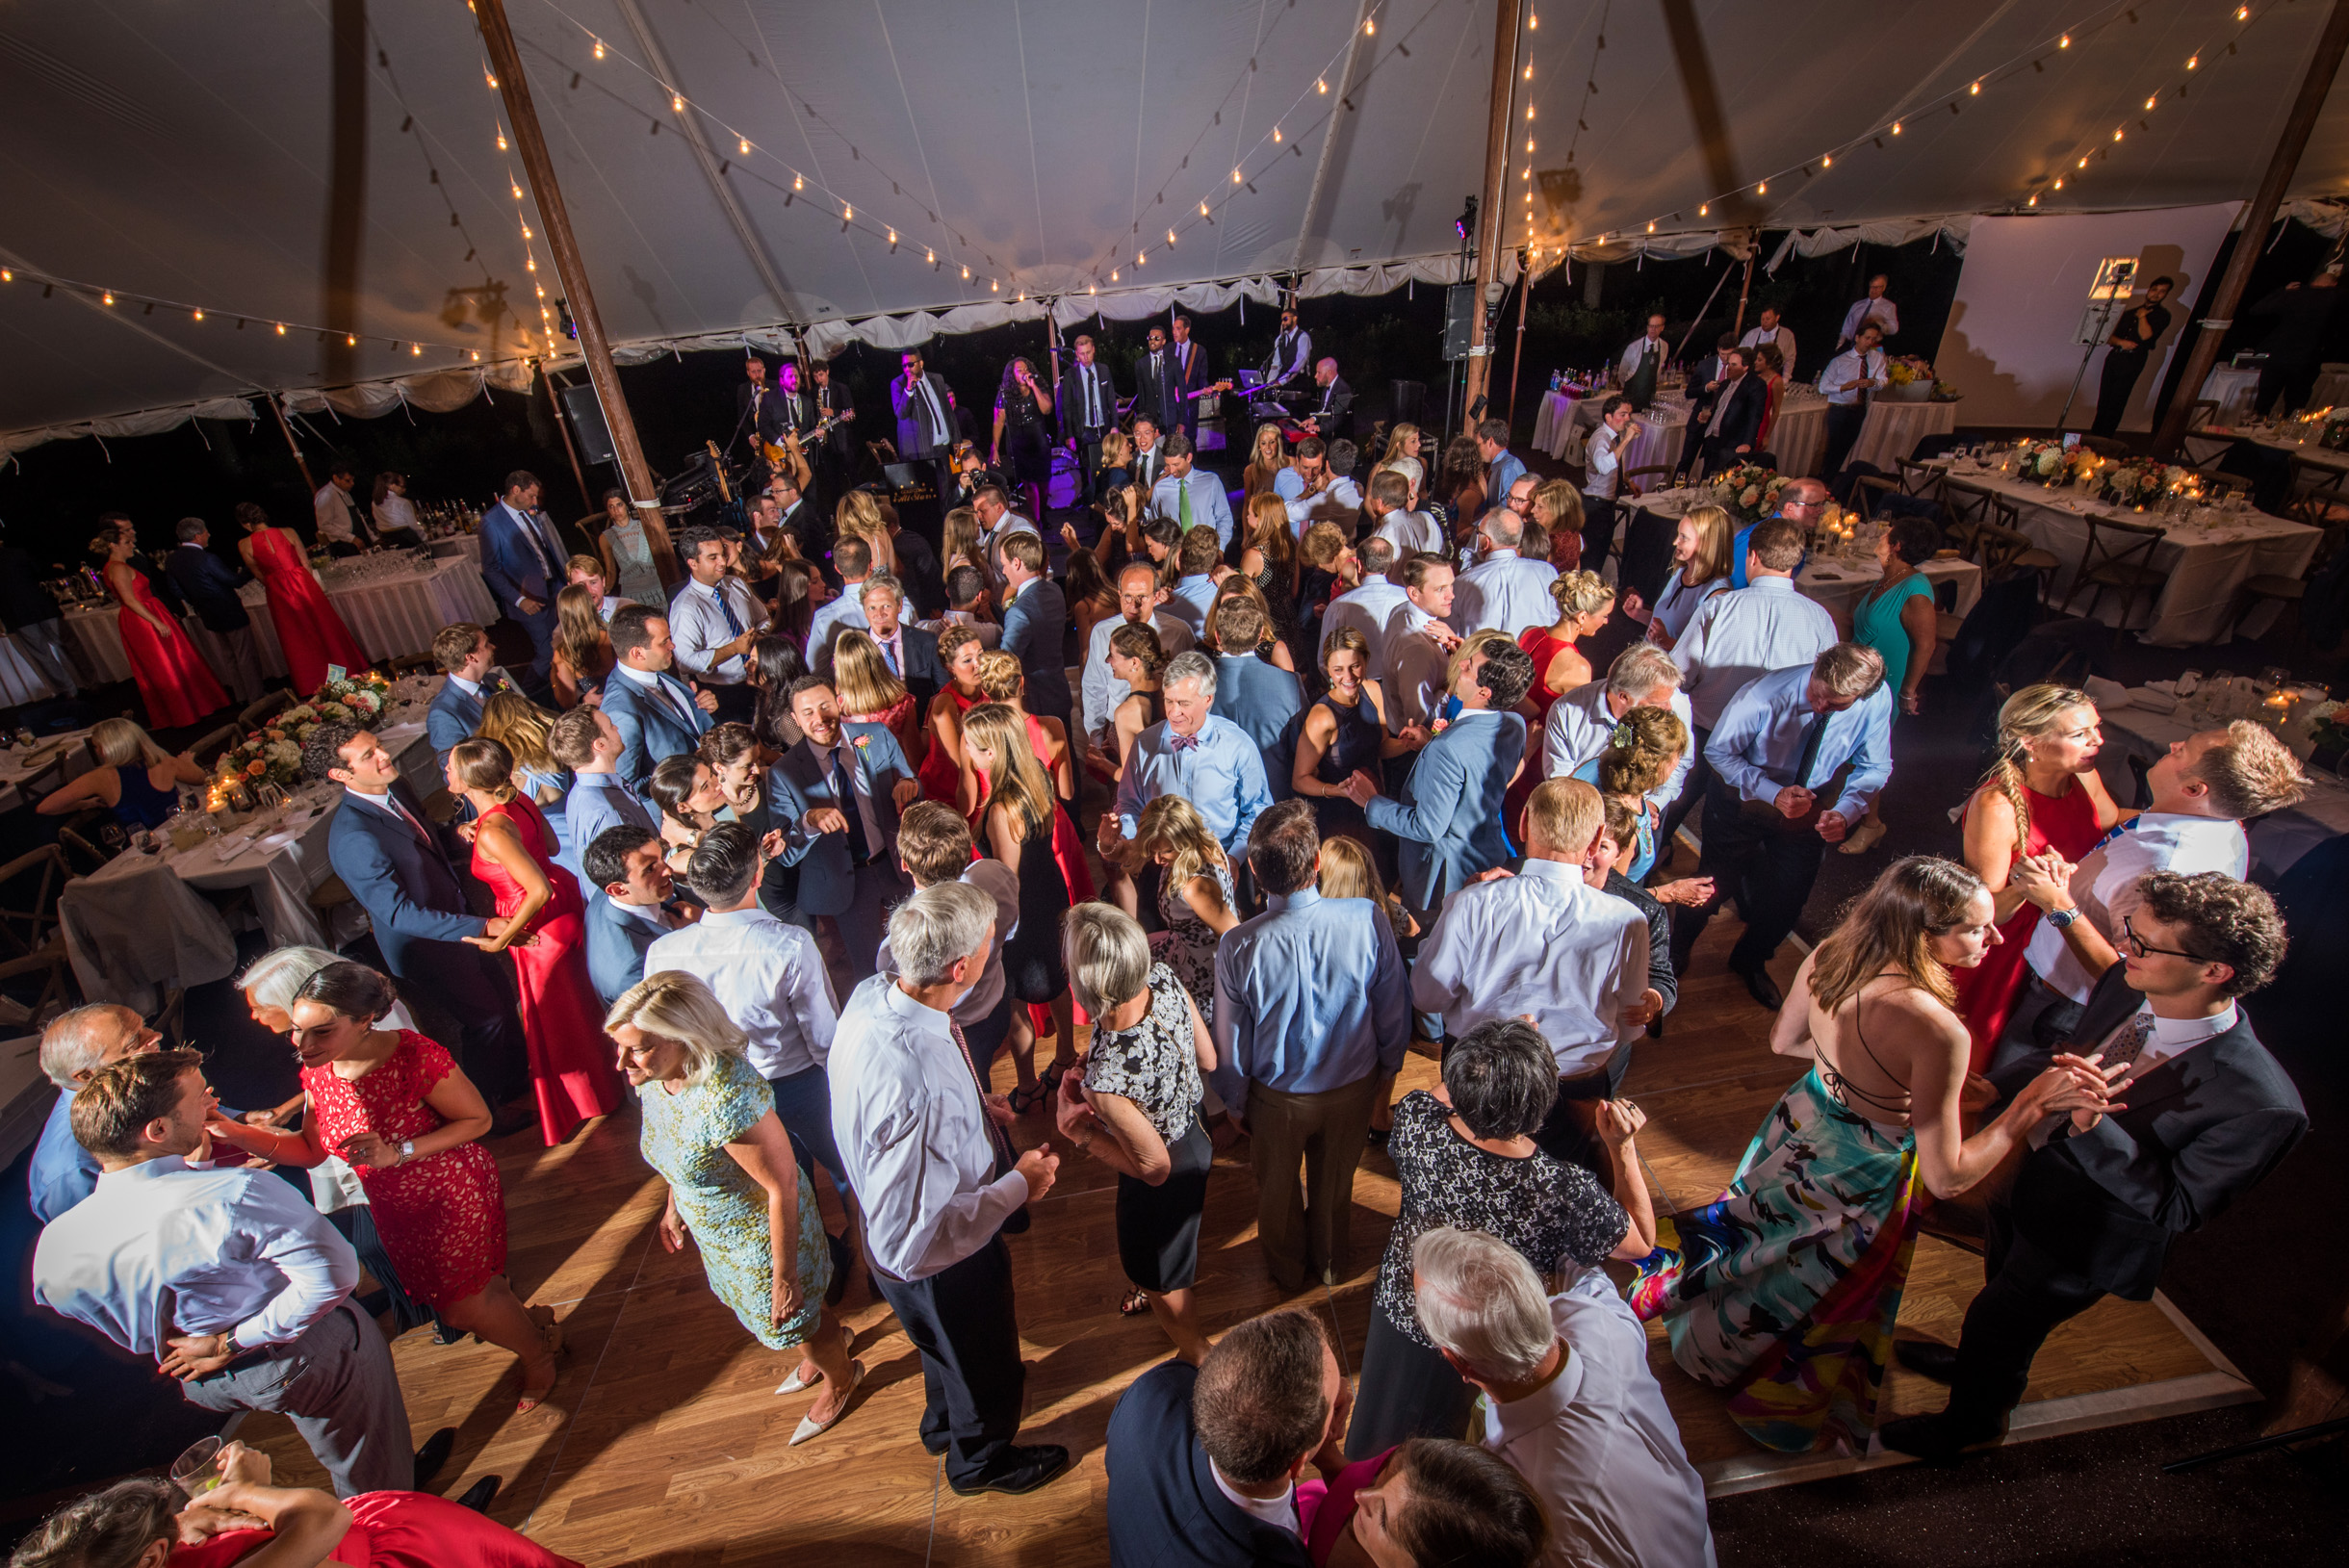 Wedding tent reception with guest dancing to live band